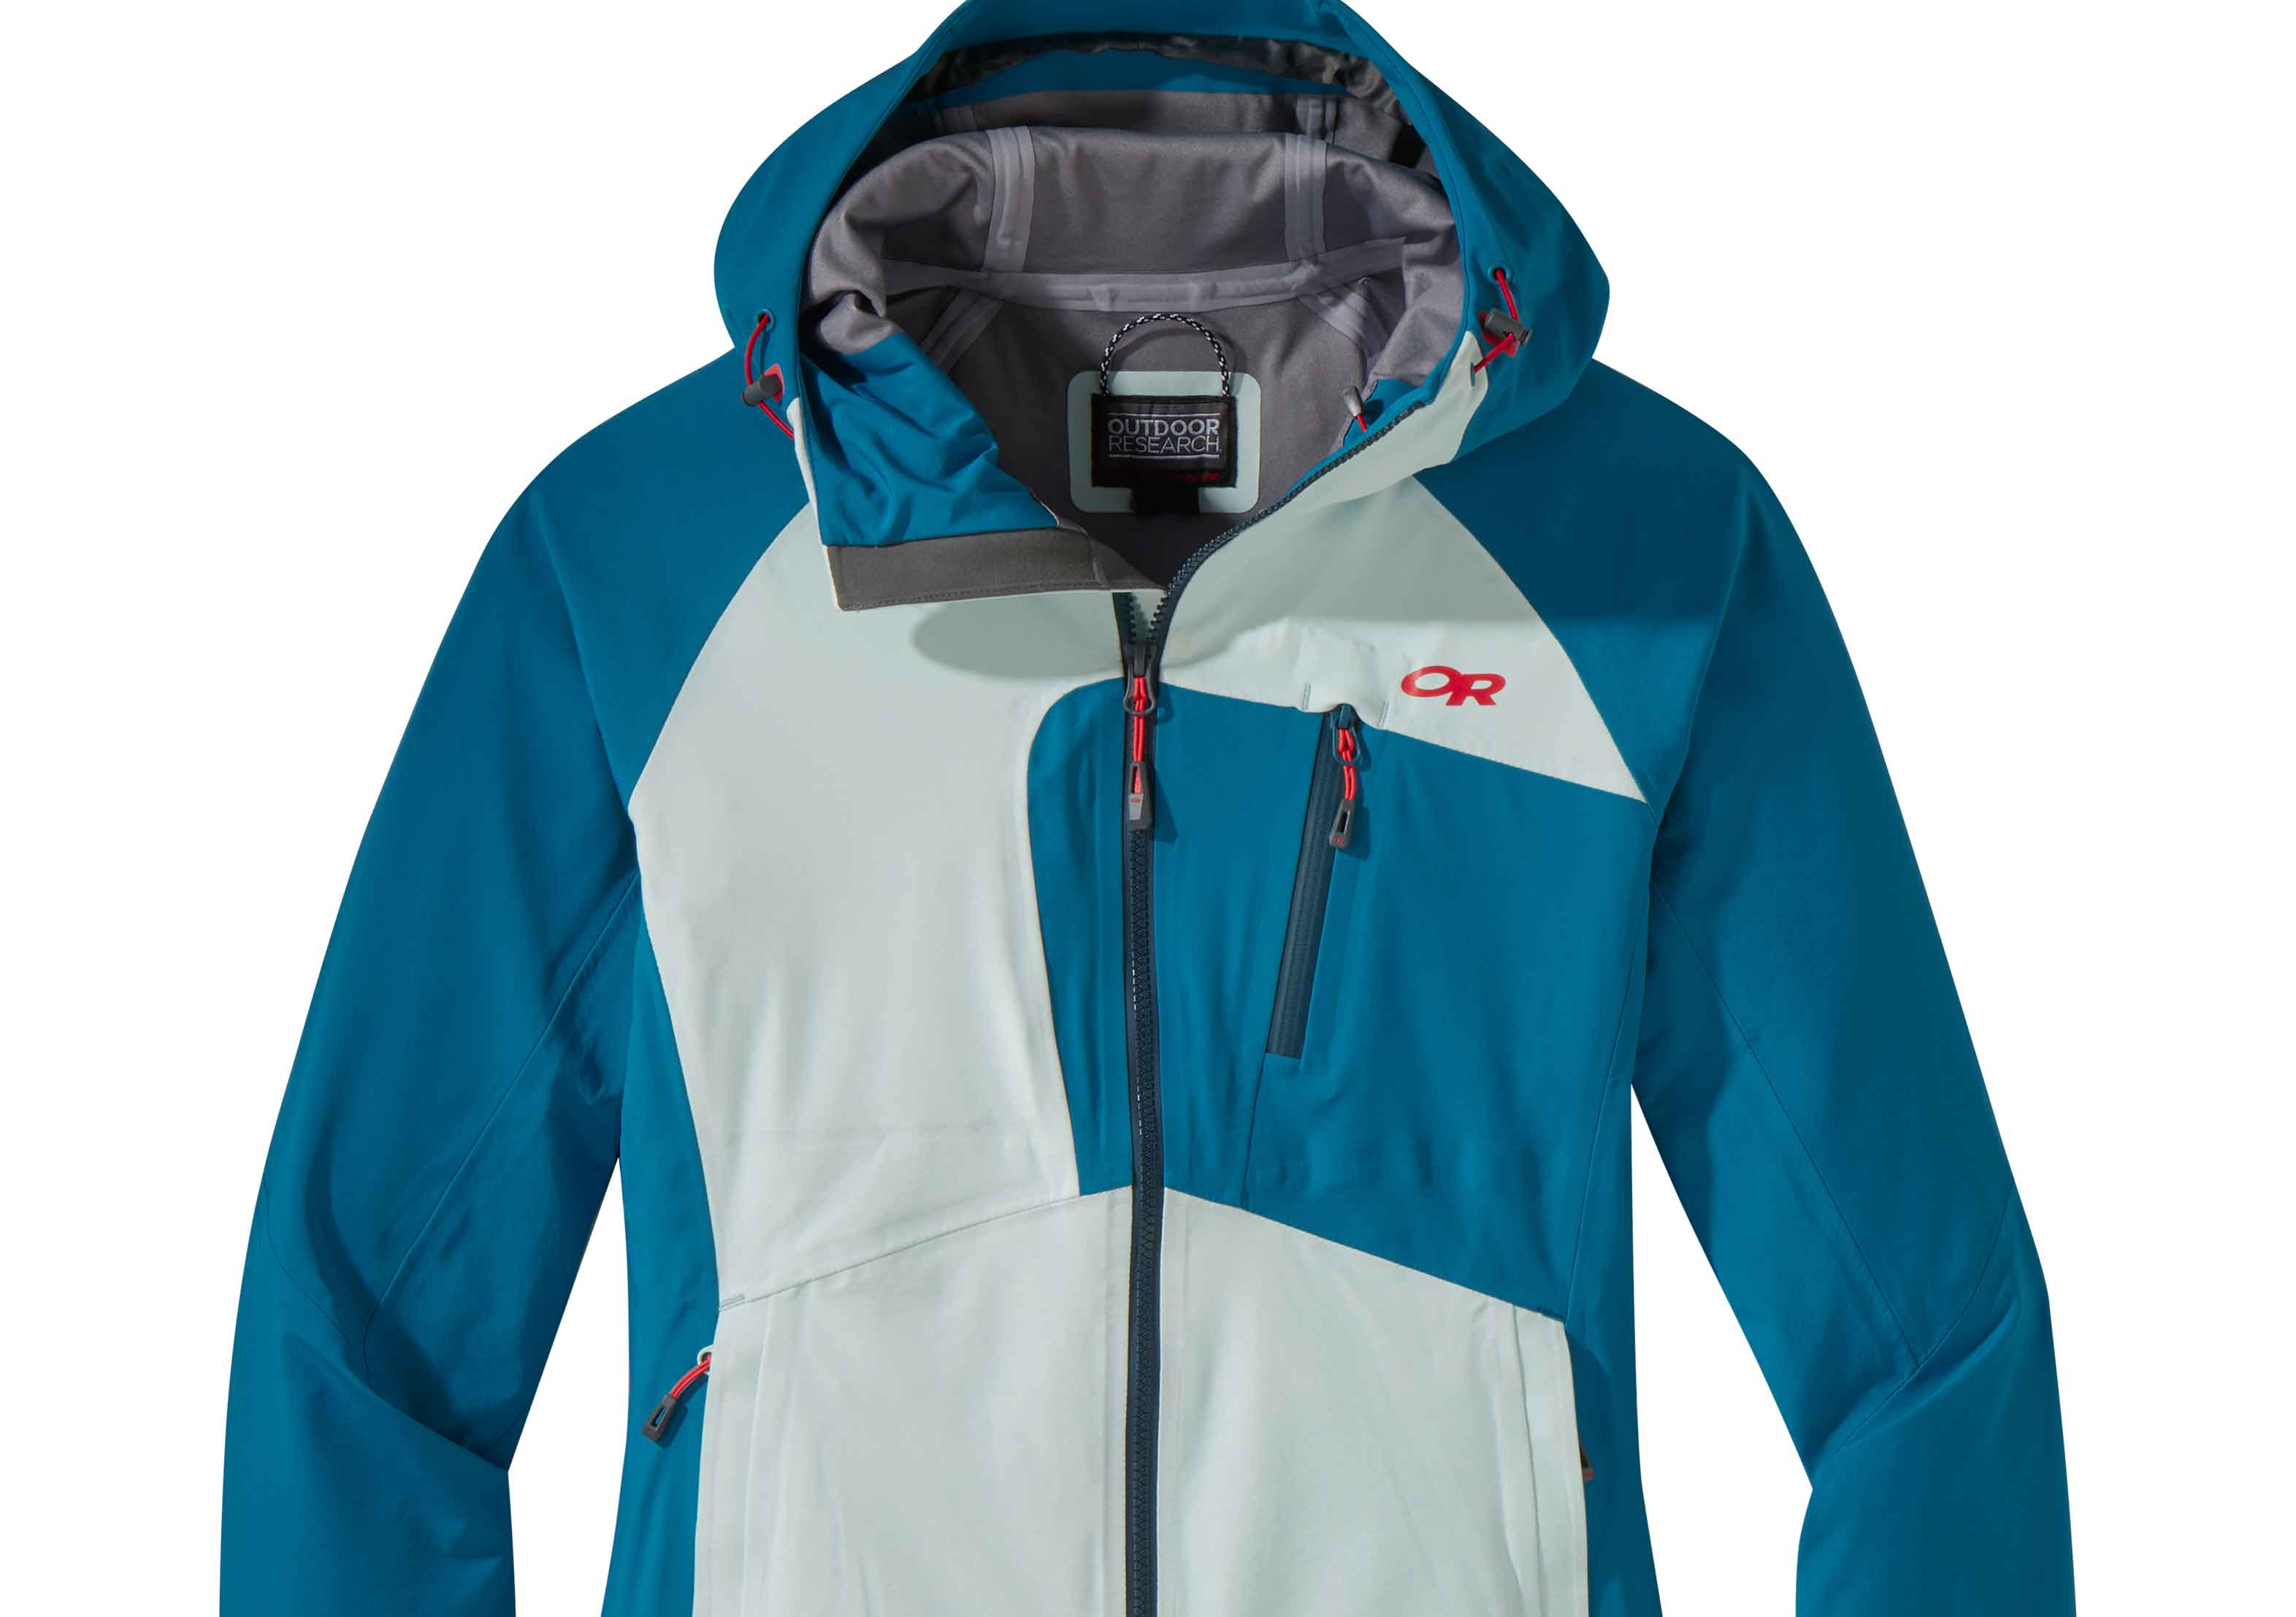 OR Skyward II Jacket